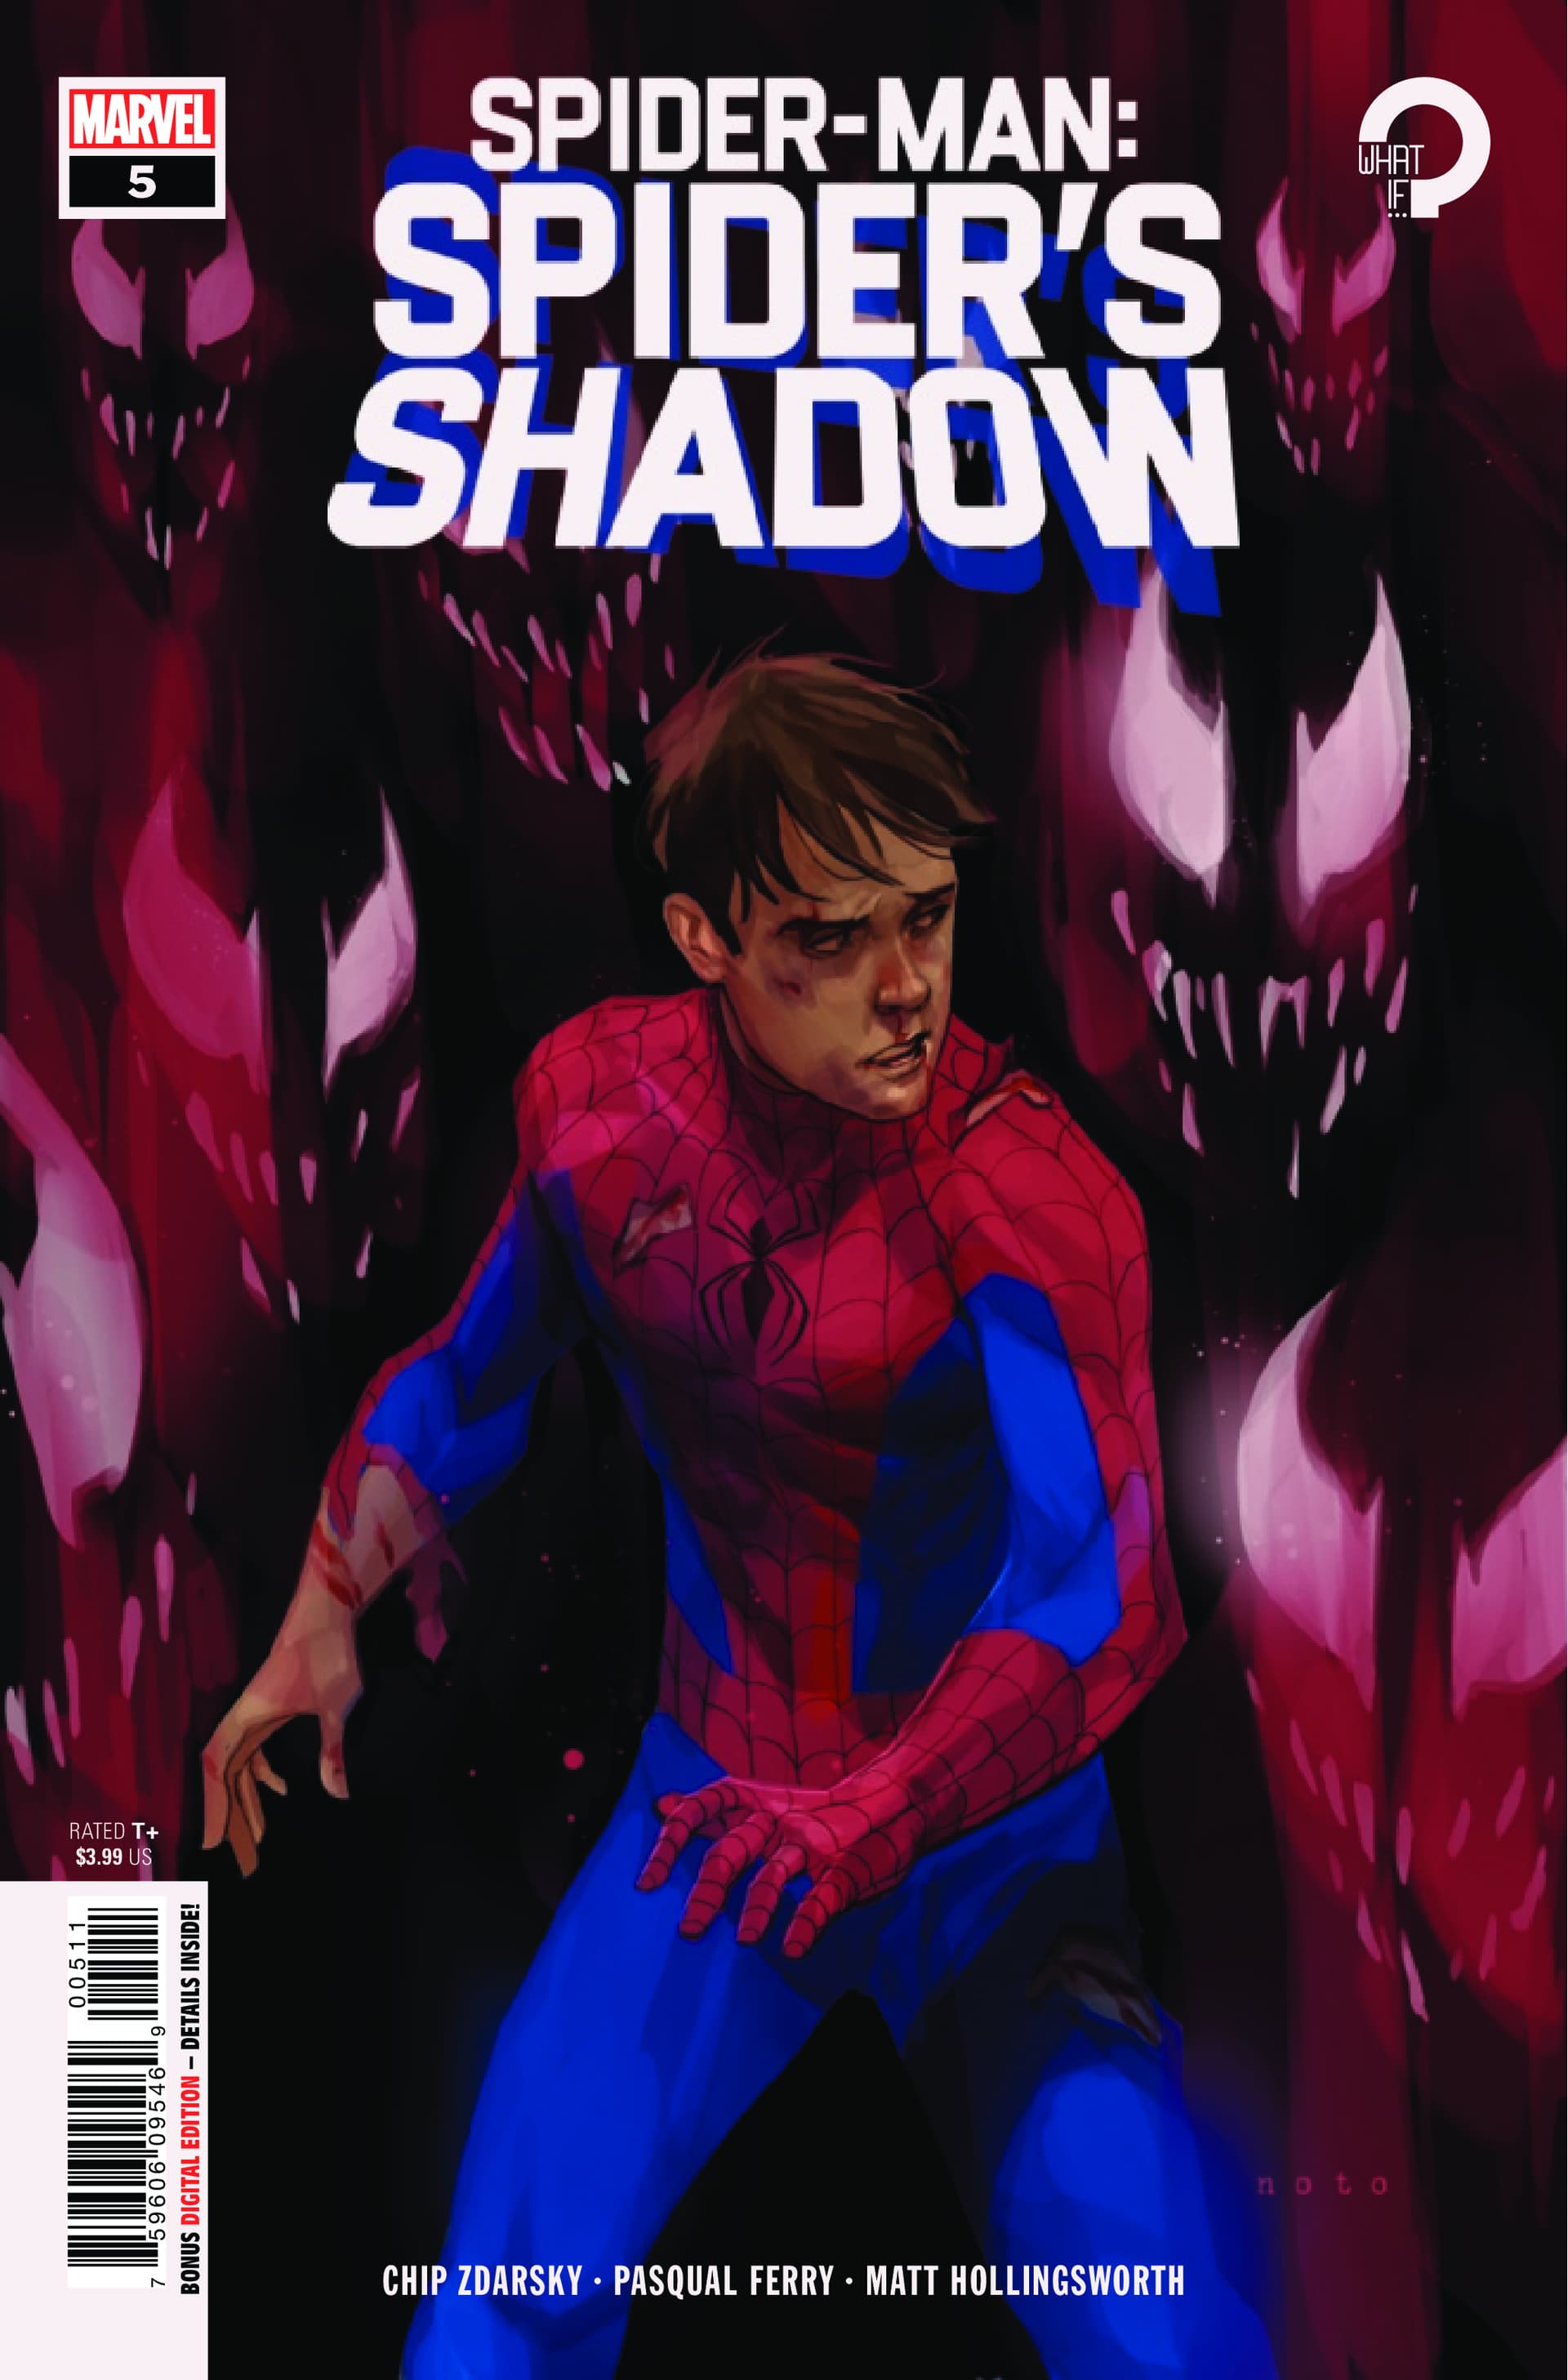 SPIDER-MAN SPIDERS SHADOW #5 (OF 5)_001